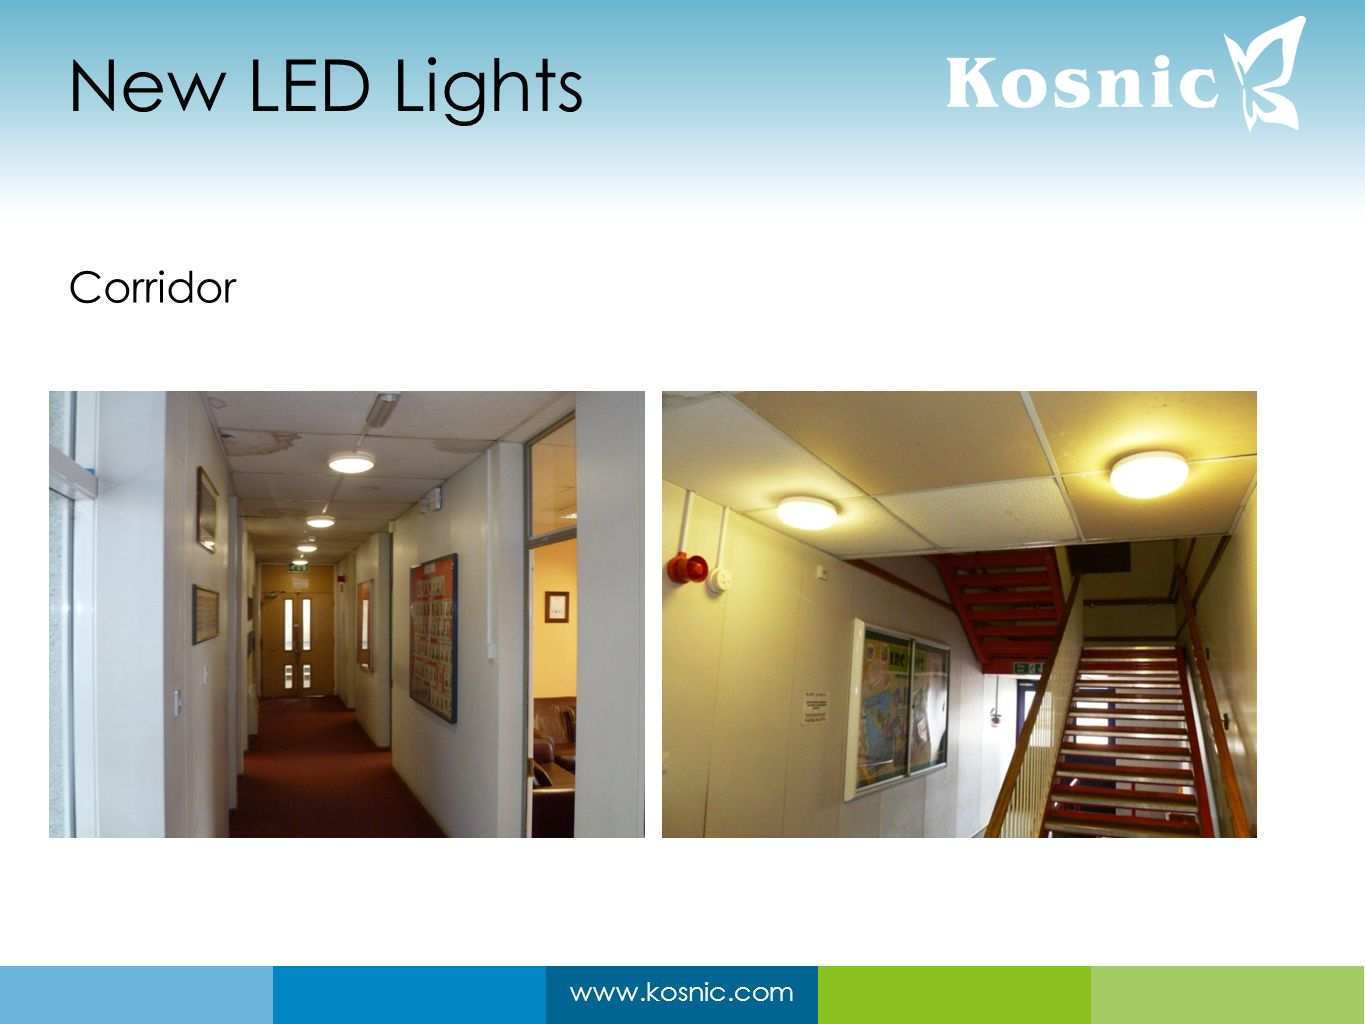 www.kosnic.com New LED Lights Corridor